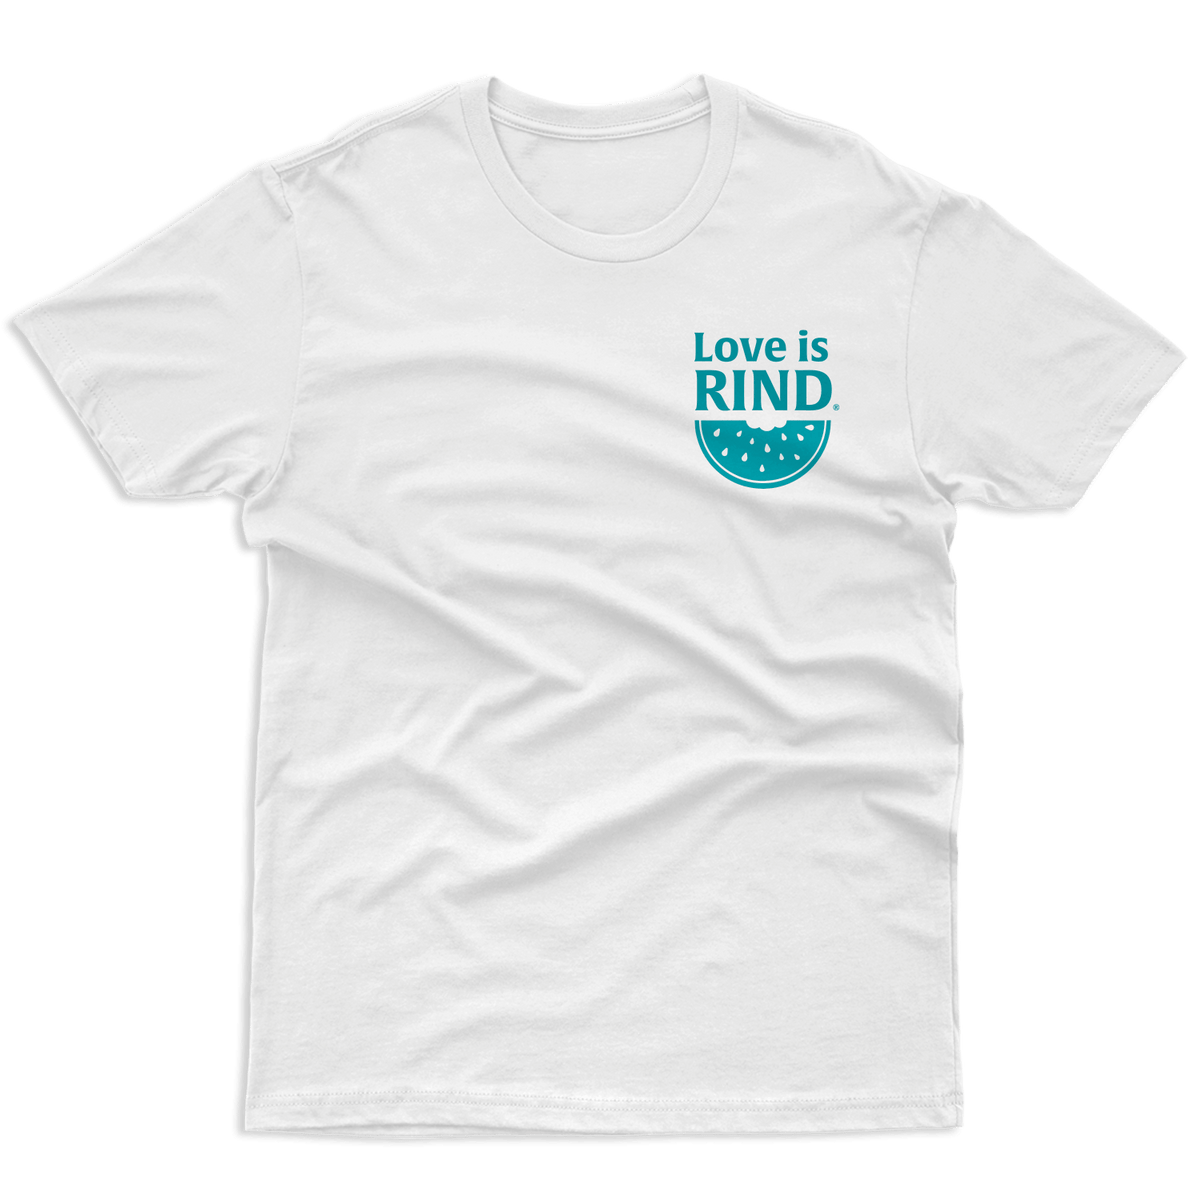 Love is RIND T-Shirt, Unisex